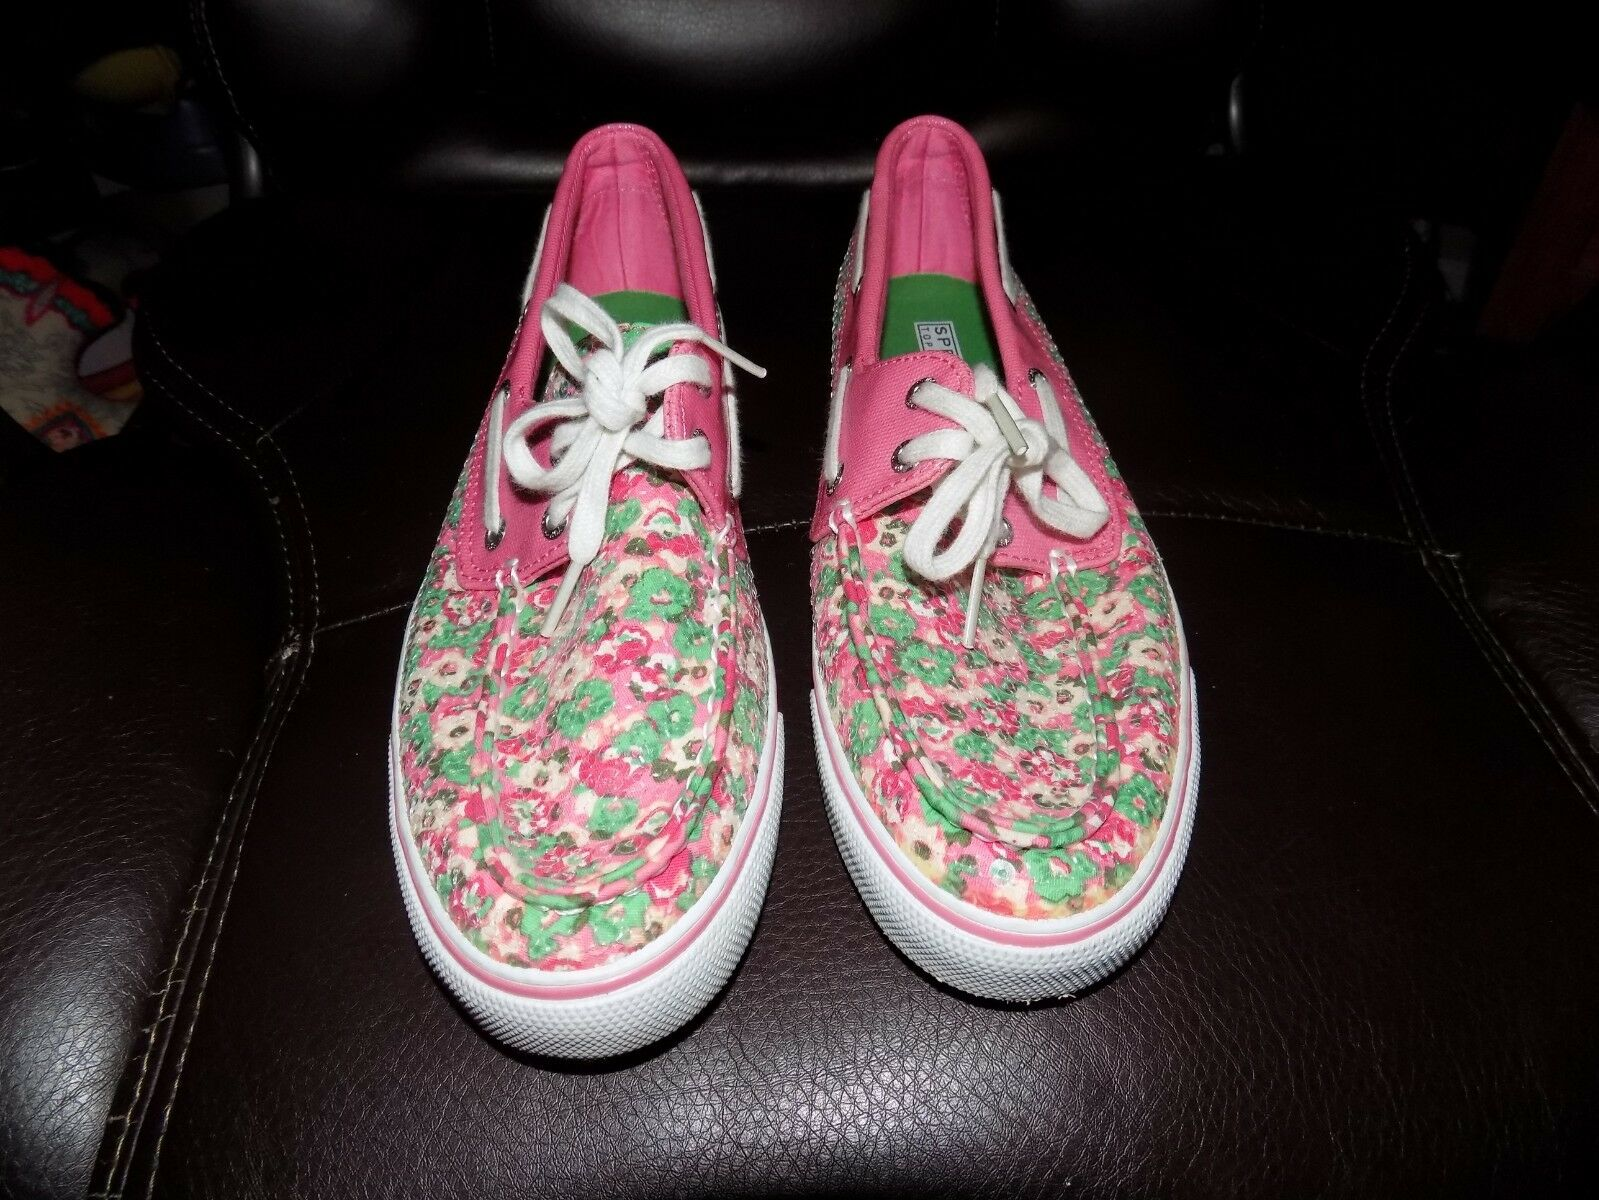 Sperry Top-Sider Pink Green Floral Sequin Boat shoes 9770850 Size 8M Women's EUC